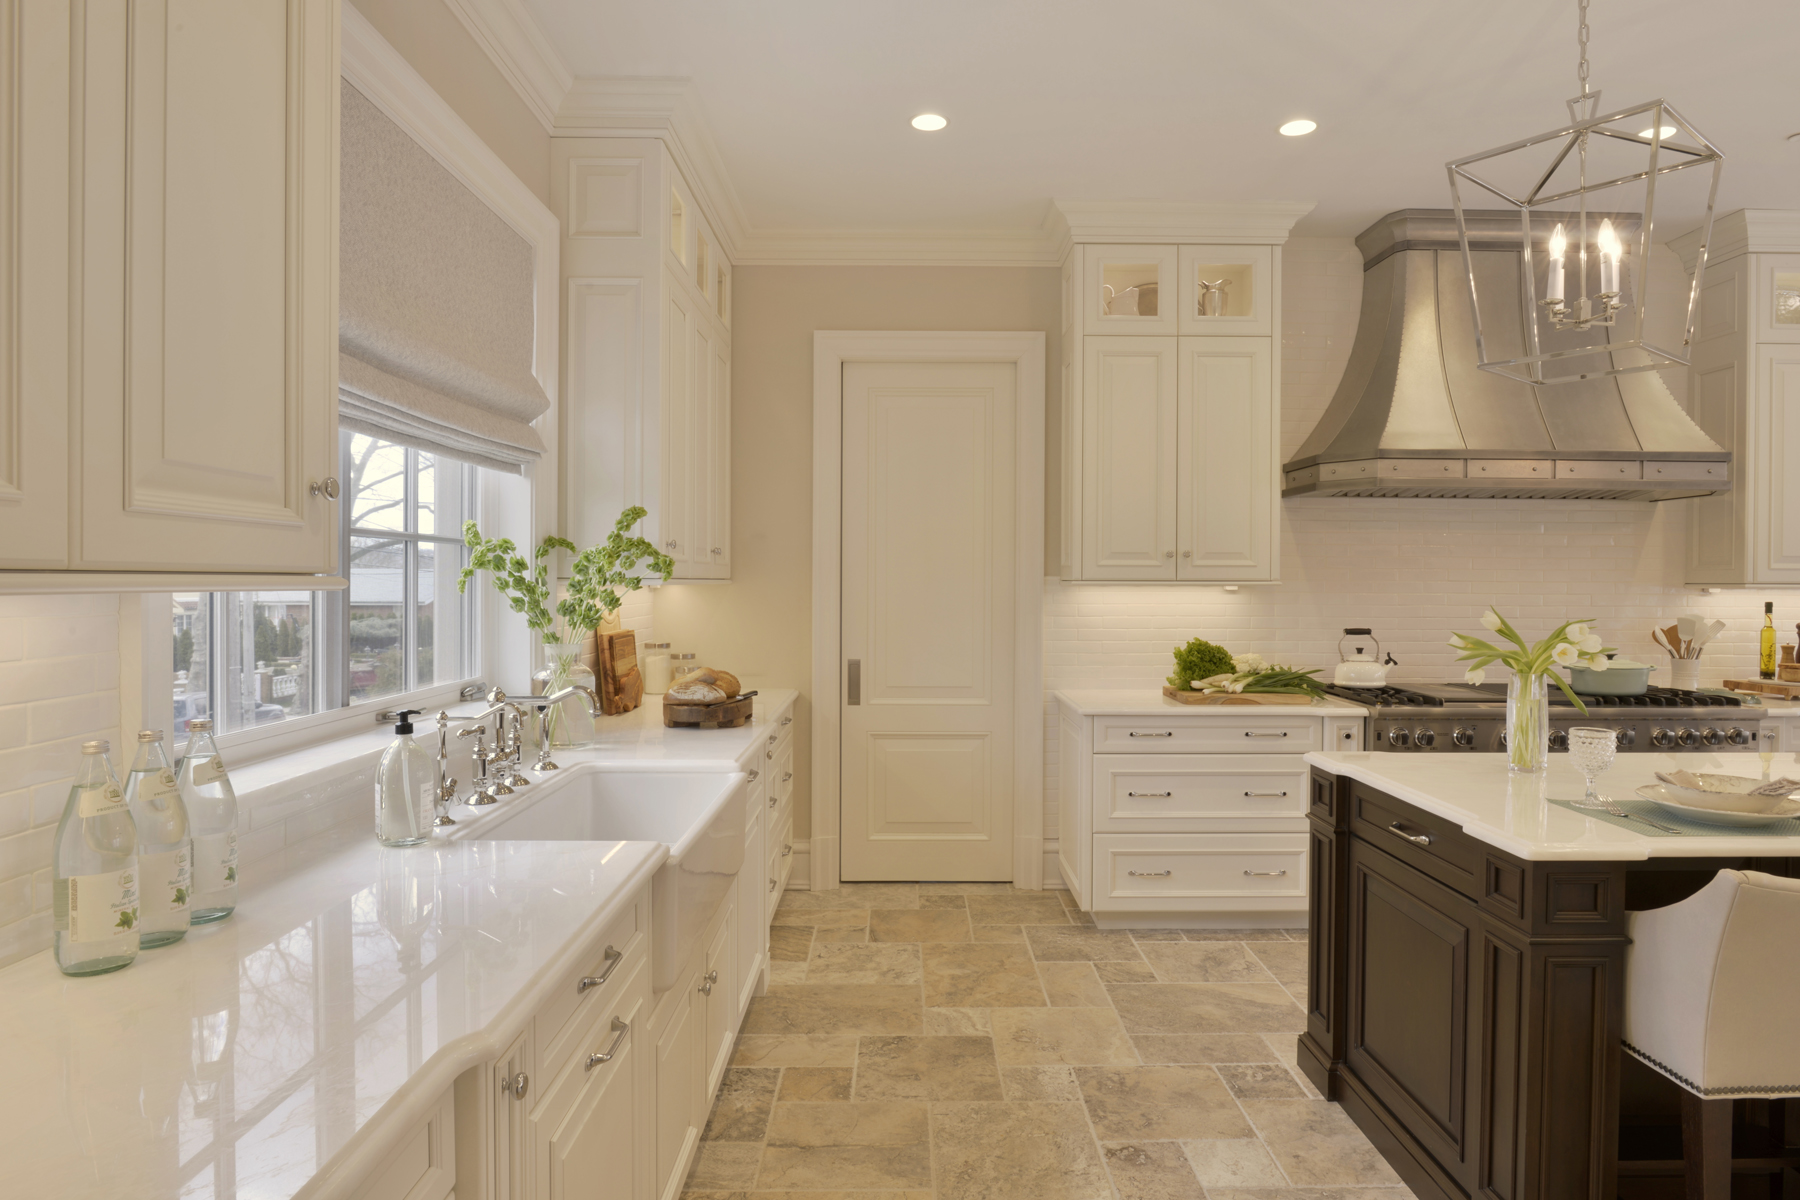 Traditional kitchen with white painted Rutt Handcrafted cabinets, white countertops, farmer's sink, white subway tiles and light flooring. Pocket door opens into butler's pantry. Designed by Tom Vecchio of Bilotta Kitchens.